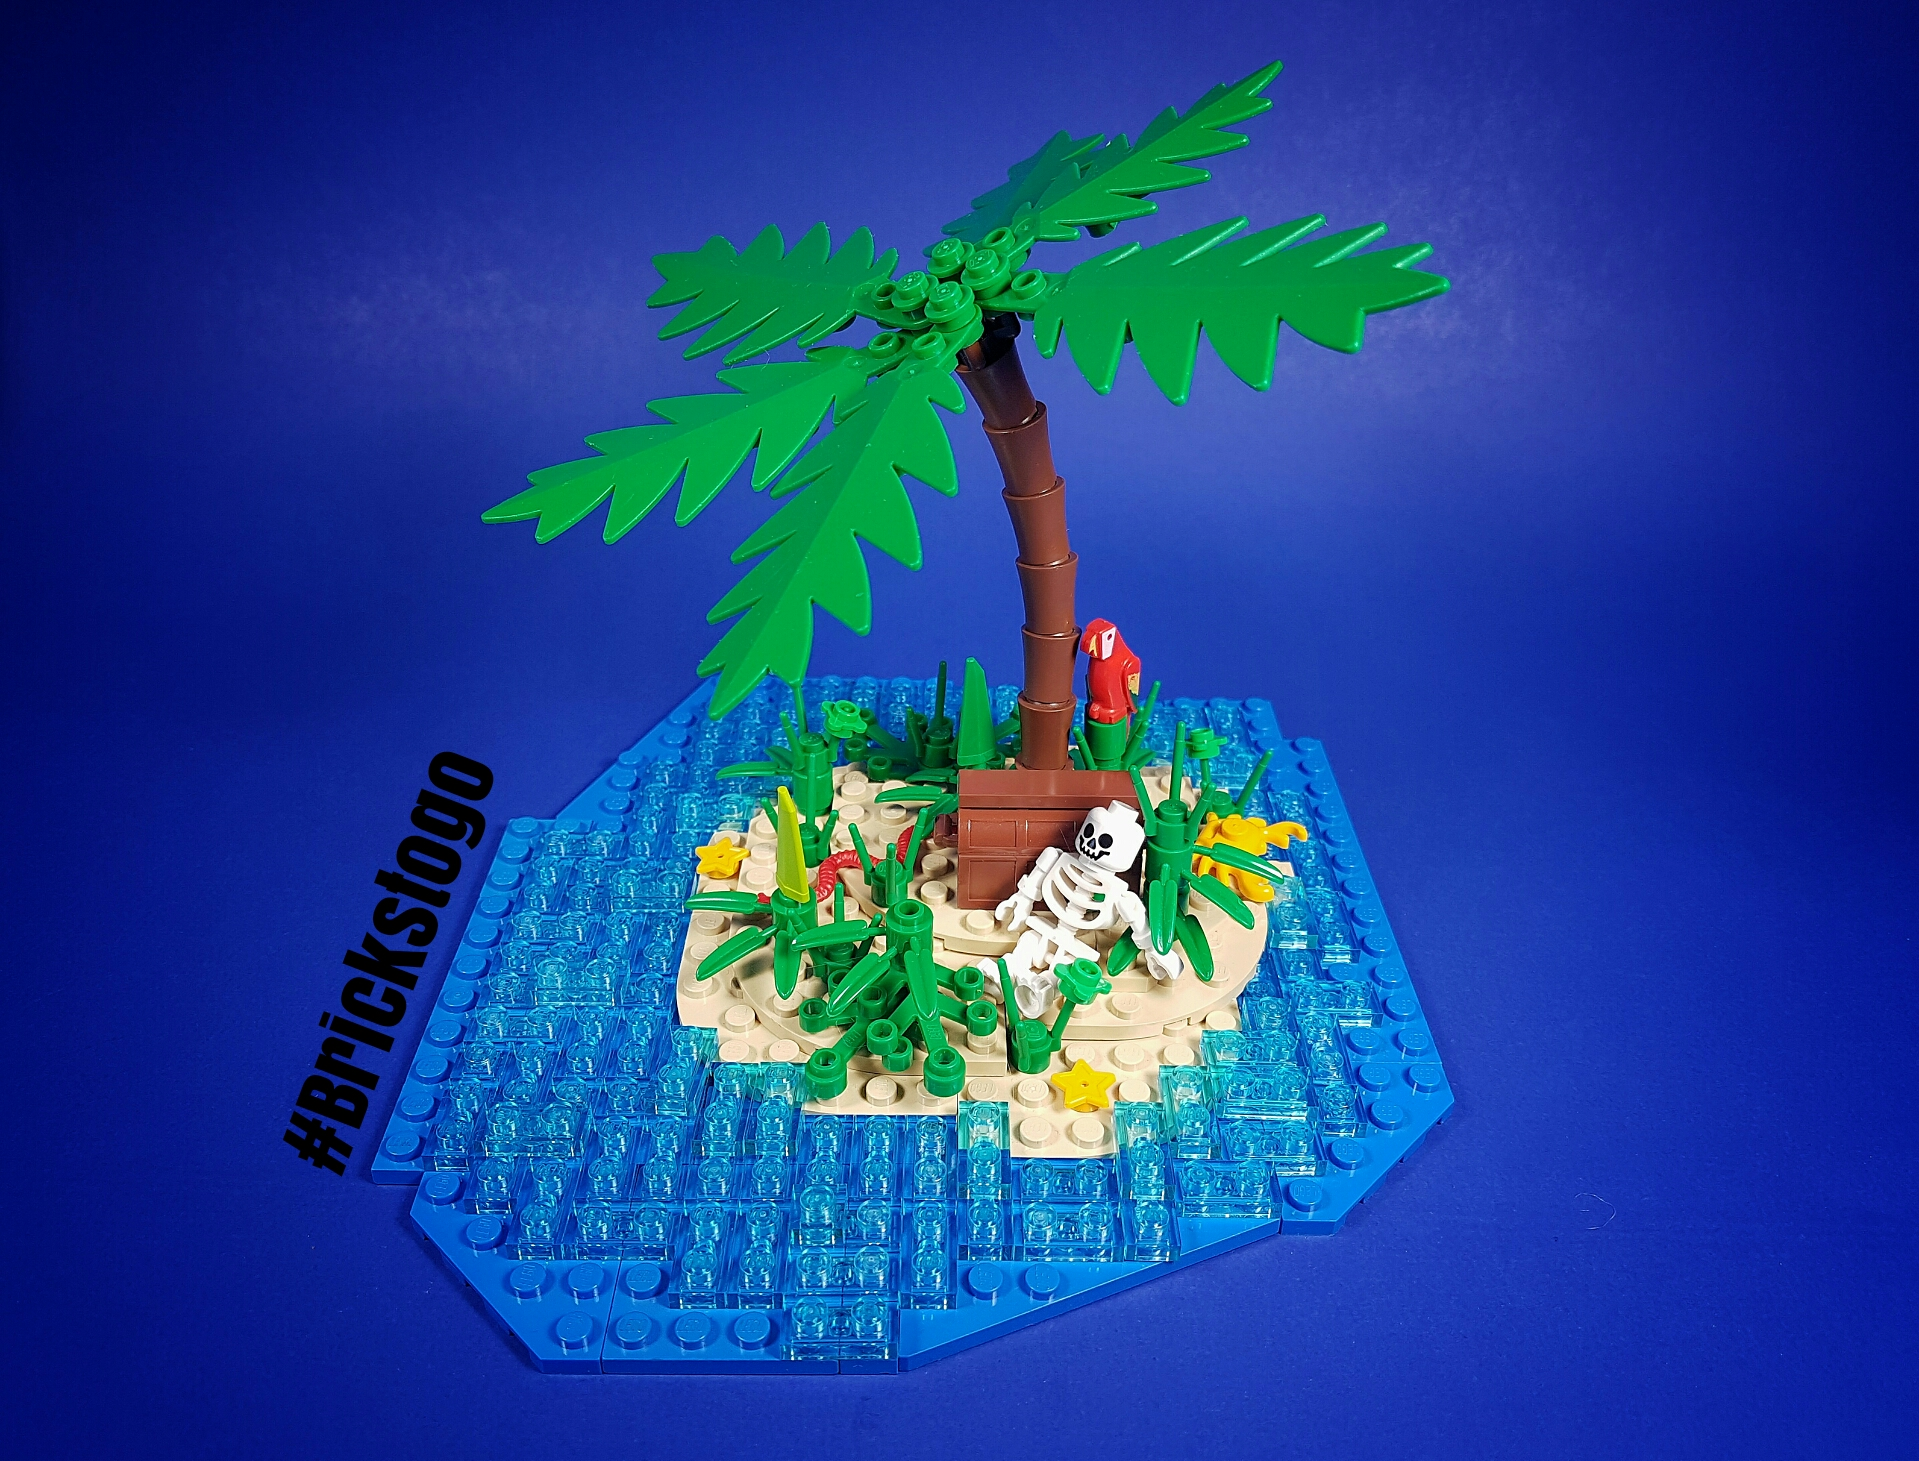 Lego island custom build with palm tree and skeleton